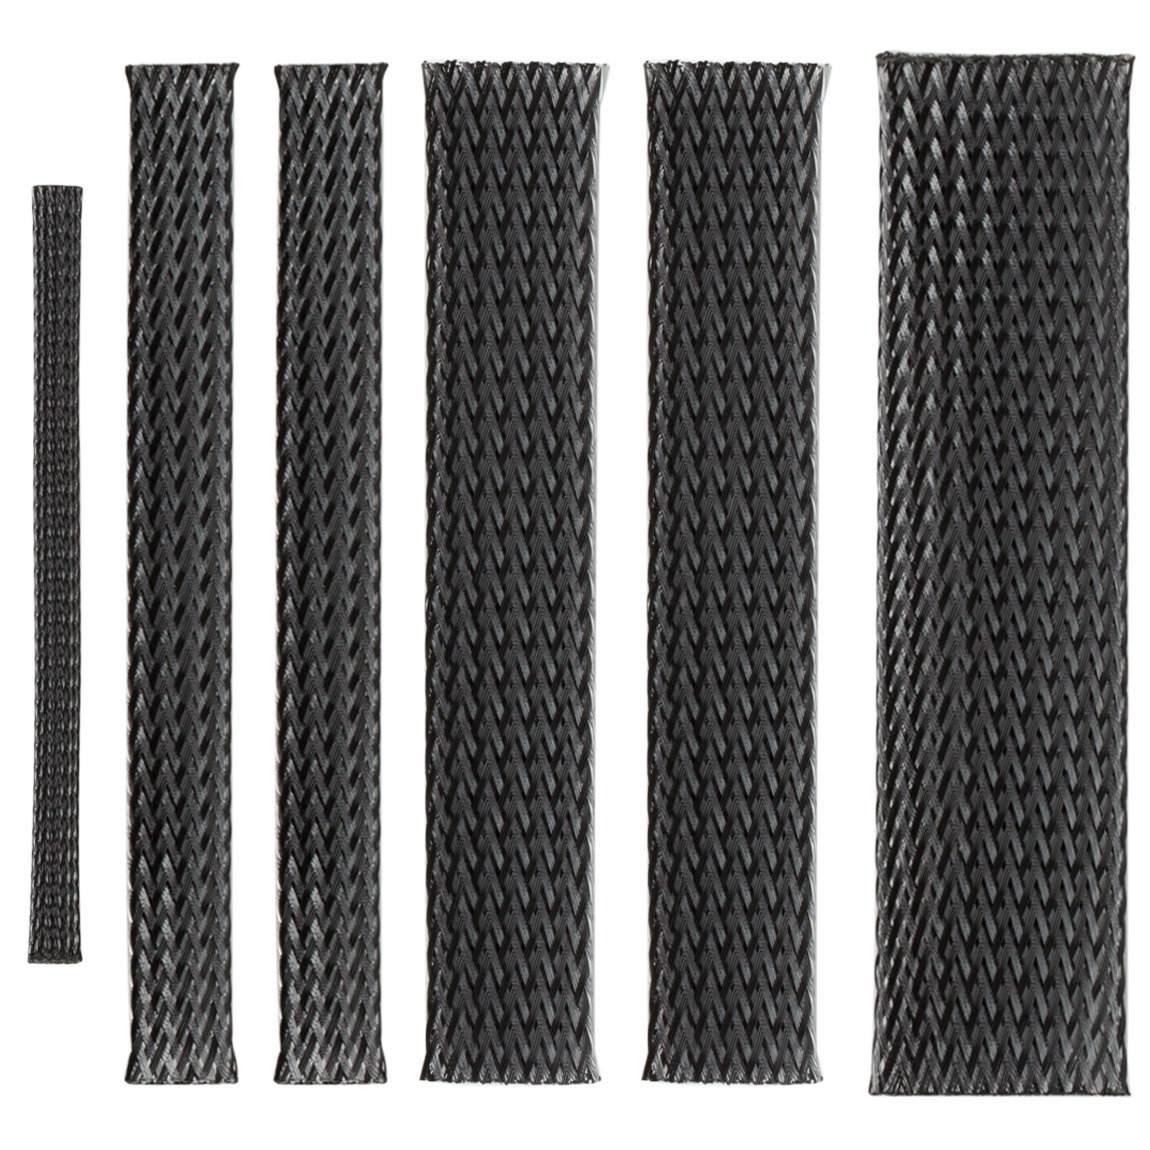 The Brush Guard Variety Pack Graphite product swatch.